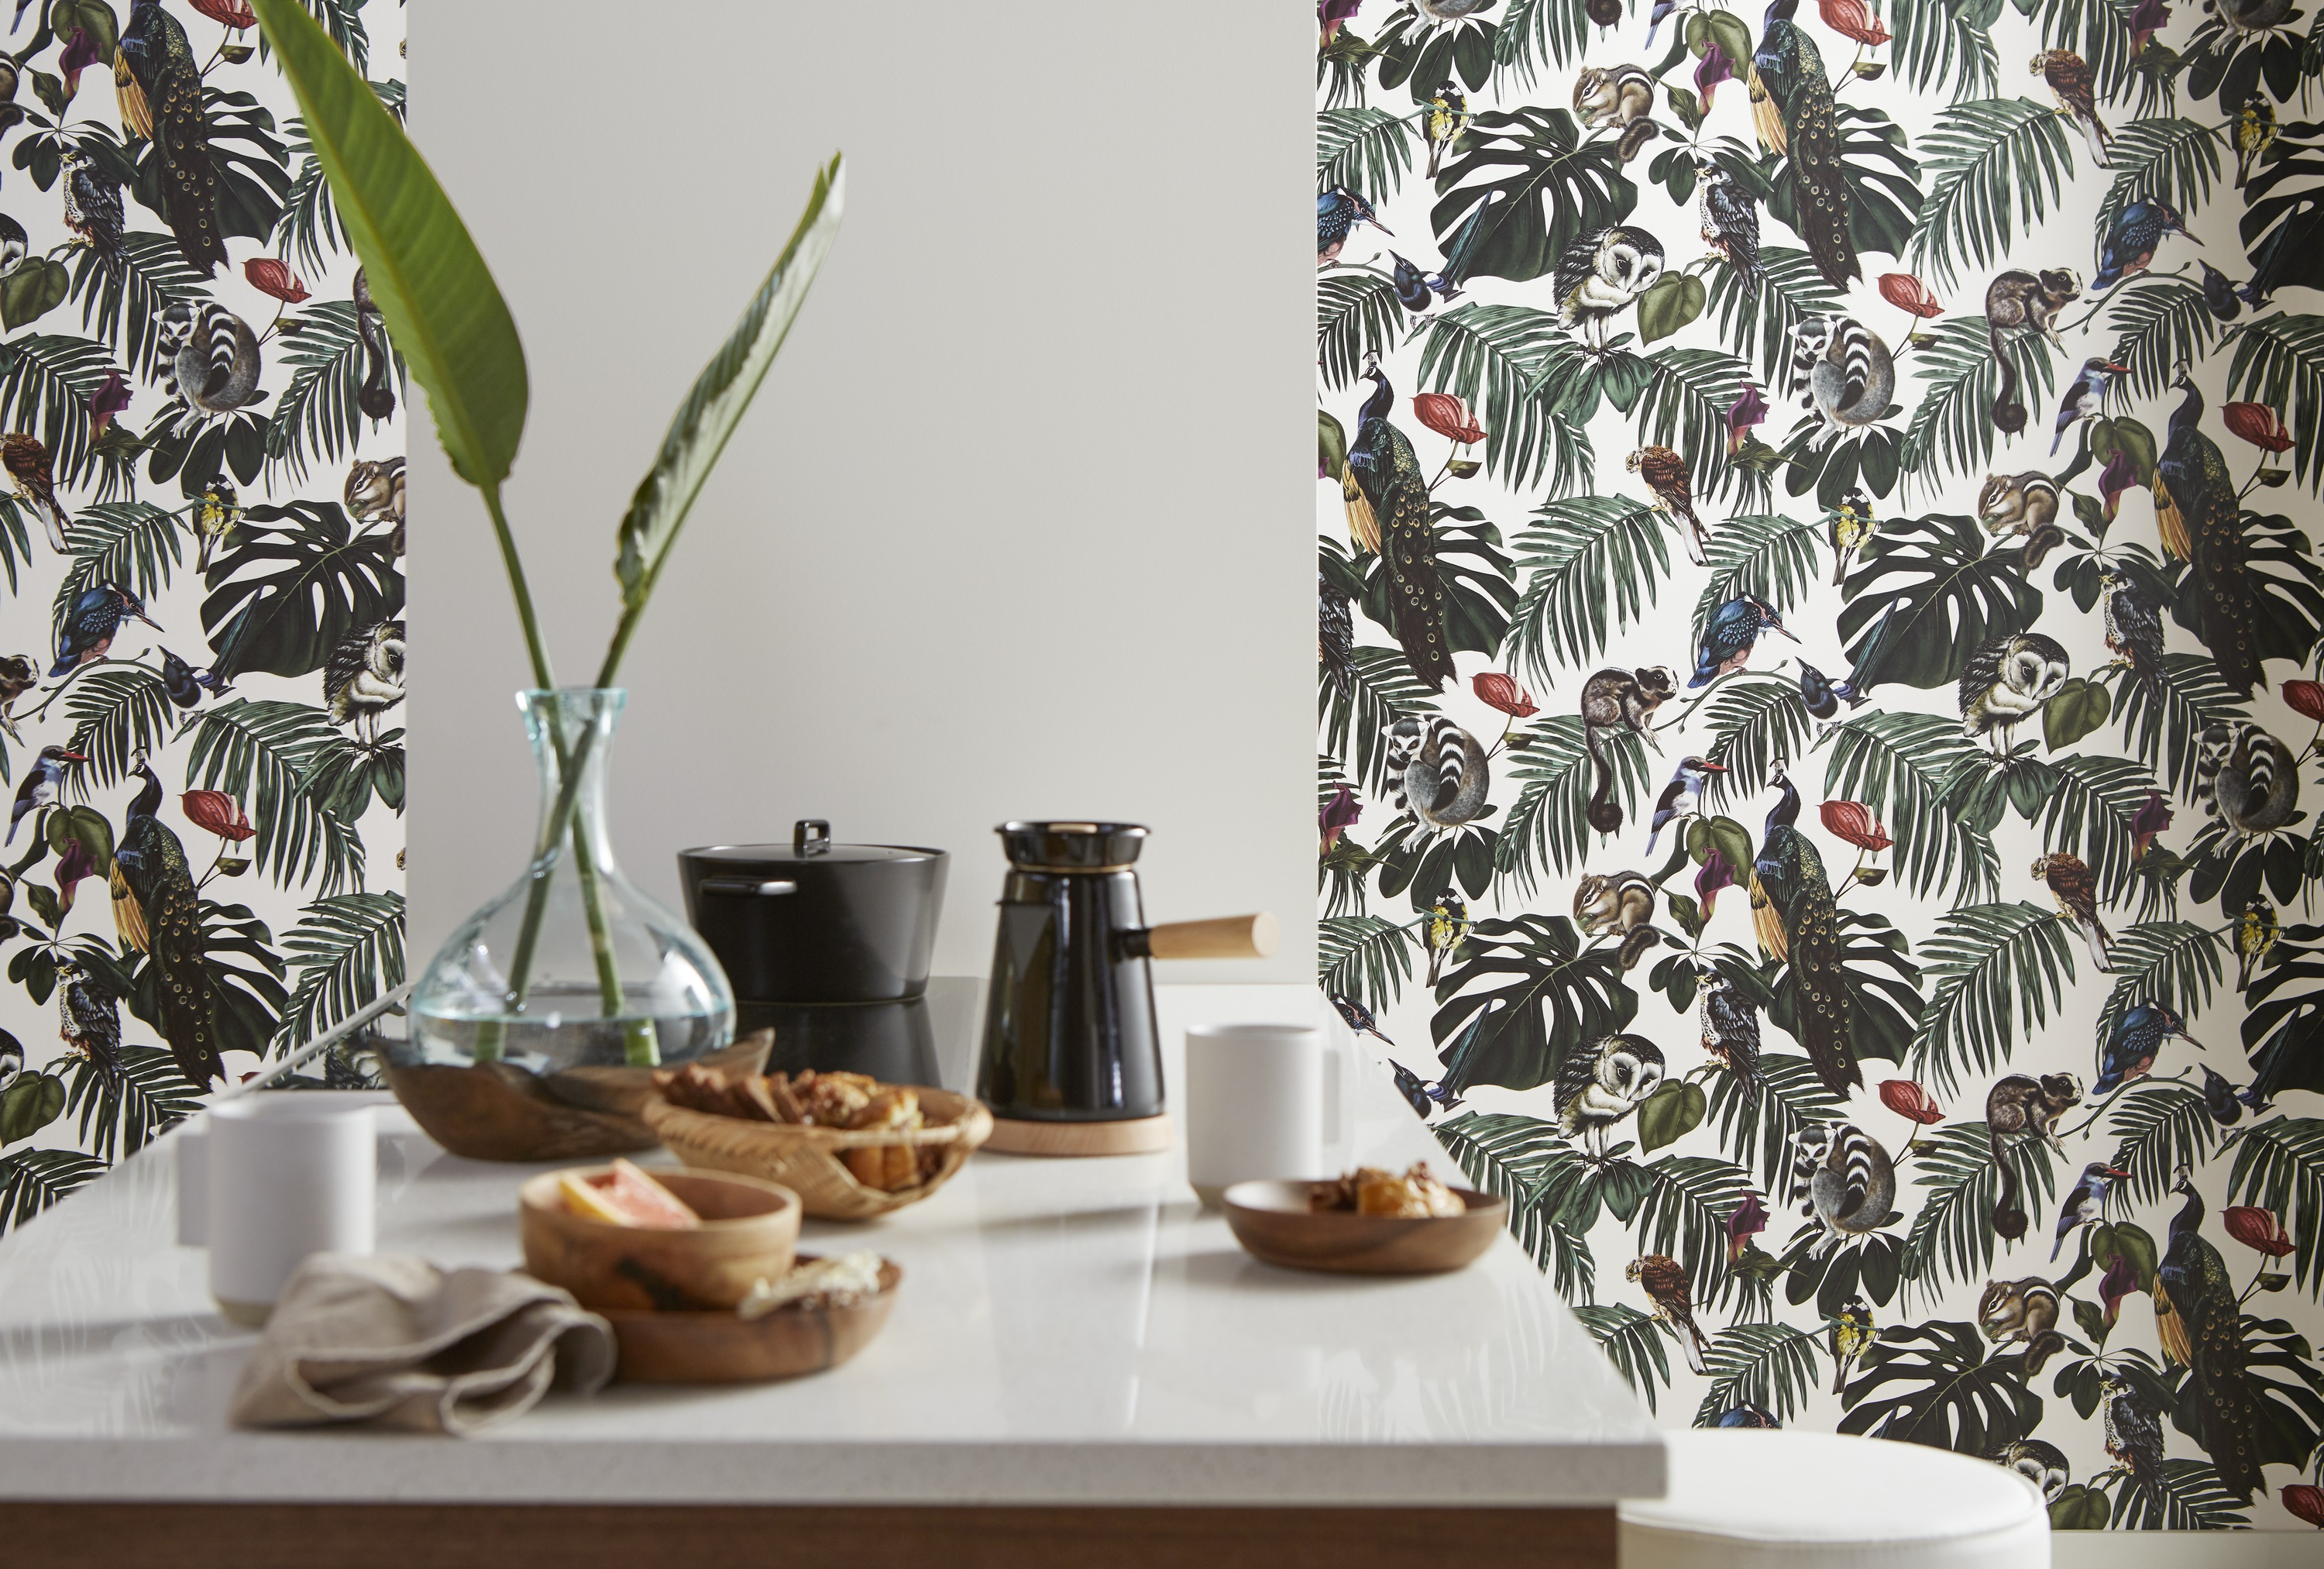 Paired with a solid-color countertop and wall, playful flora and fauna wallpaper creates a feeling of adventure without feeling overwhelming.